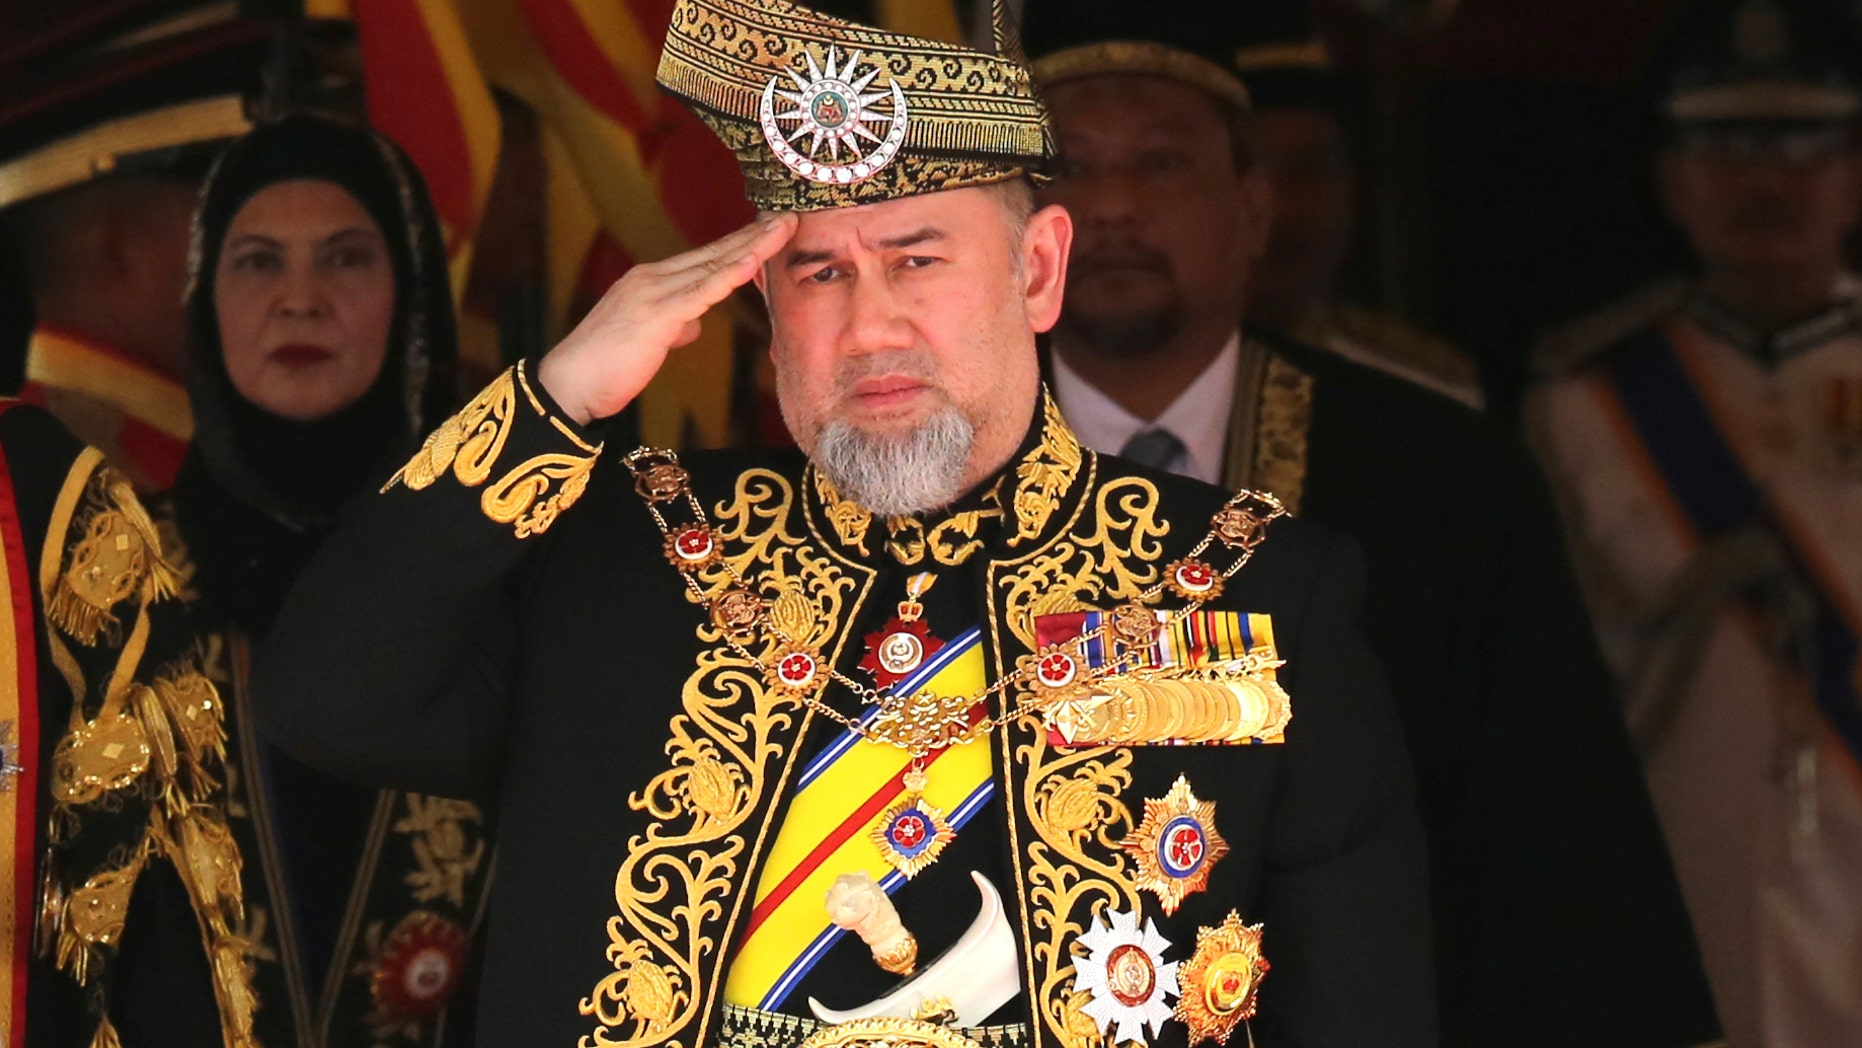 FILE - In this July 17, 2018, file photo, Malaysian King Sultan Muhammad V salutes during the national anthem at the opening of the 14th parliament session at the Parliament house in Kuala Lumpur, Malaysia. Malaysia King Sultan Muhammad V has abdicated in an unexpected and rare move, just after two years on the throne. The palace said in a statement on Sunday, Jan. 6, 2019, that Sultan Muhammad V, 49, has resigned with immediate effect, cutting short his five-year term, without giving any reasons. Sultan Muhammad V, ruler of northeast Kelantan state, was installed in December 2016 as one of the country's youngest constitutional monarchs. (AP Photo/Yam G-Jun, File)